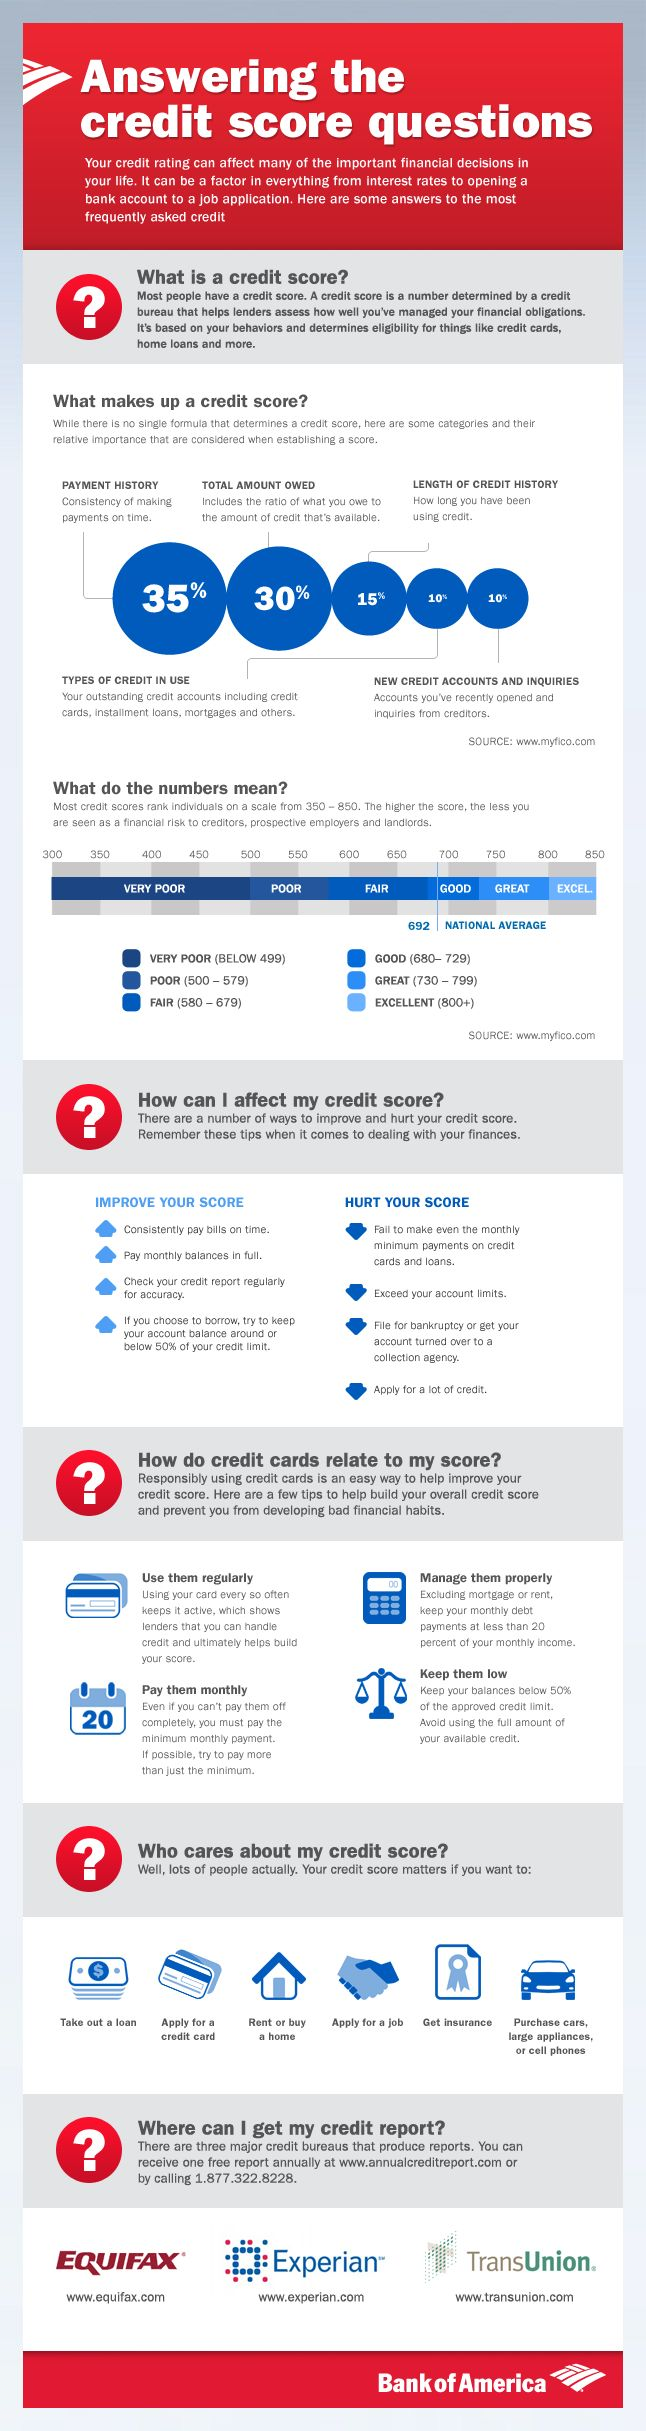 Learn about your credit rating and how to improve your credit score with detailed information and tips provided by Bank of America.